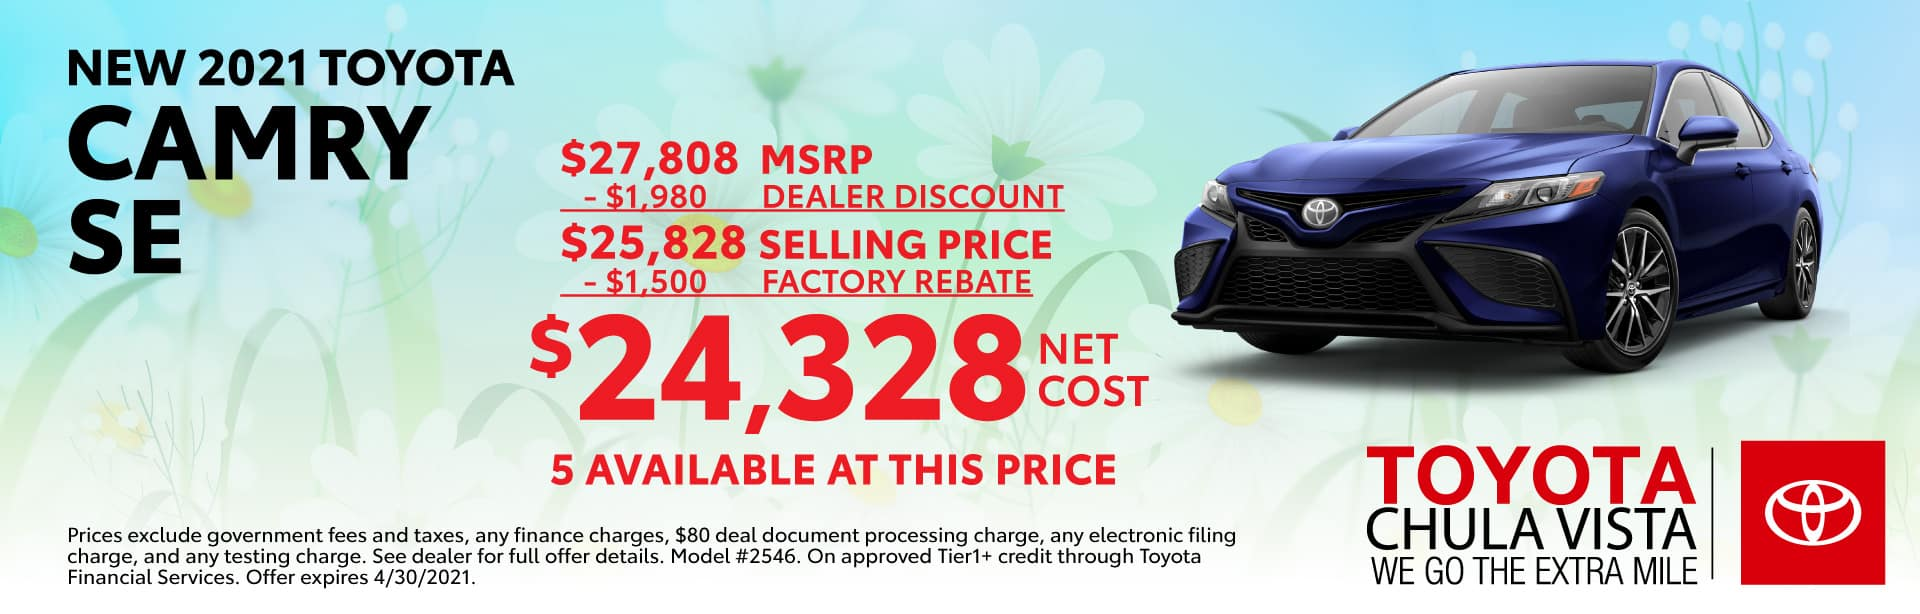 TCV_1920x614_Offers2_Apr30_camry_SE